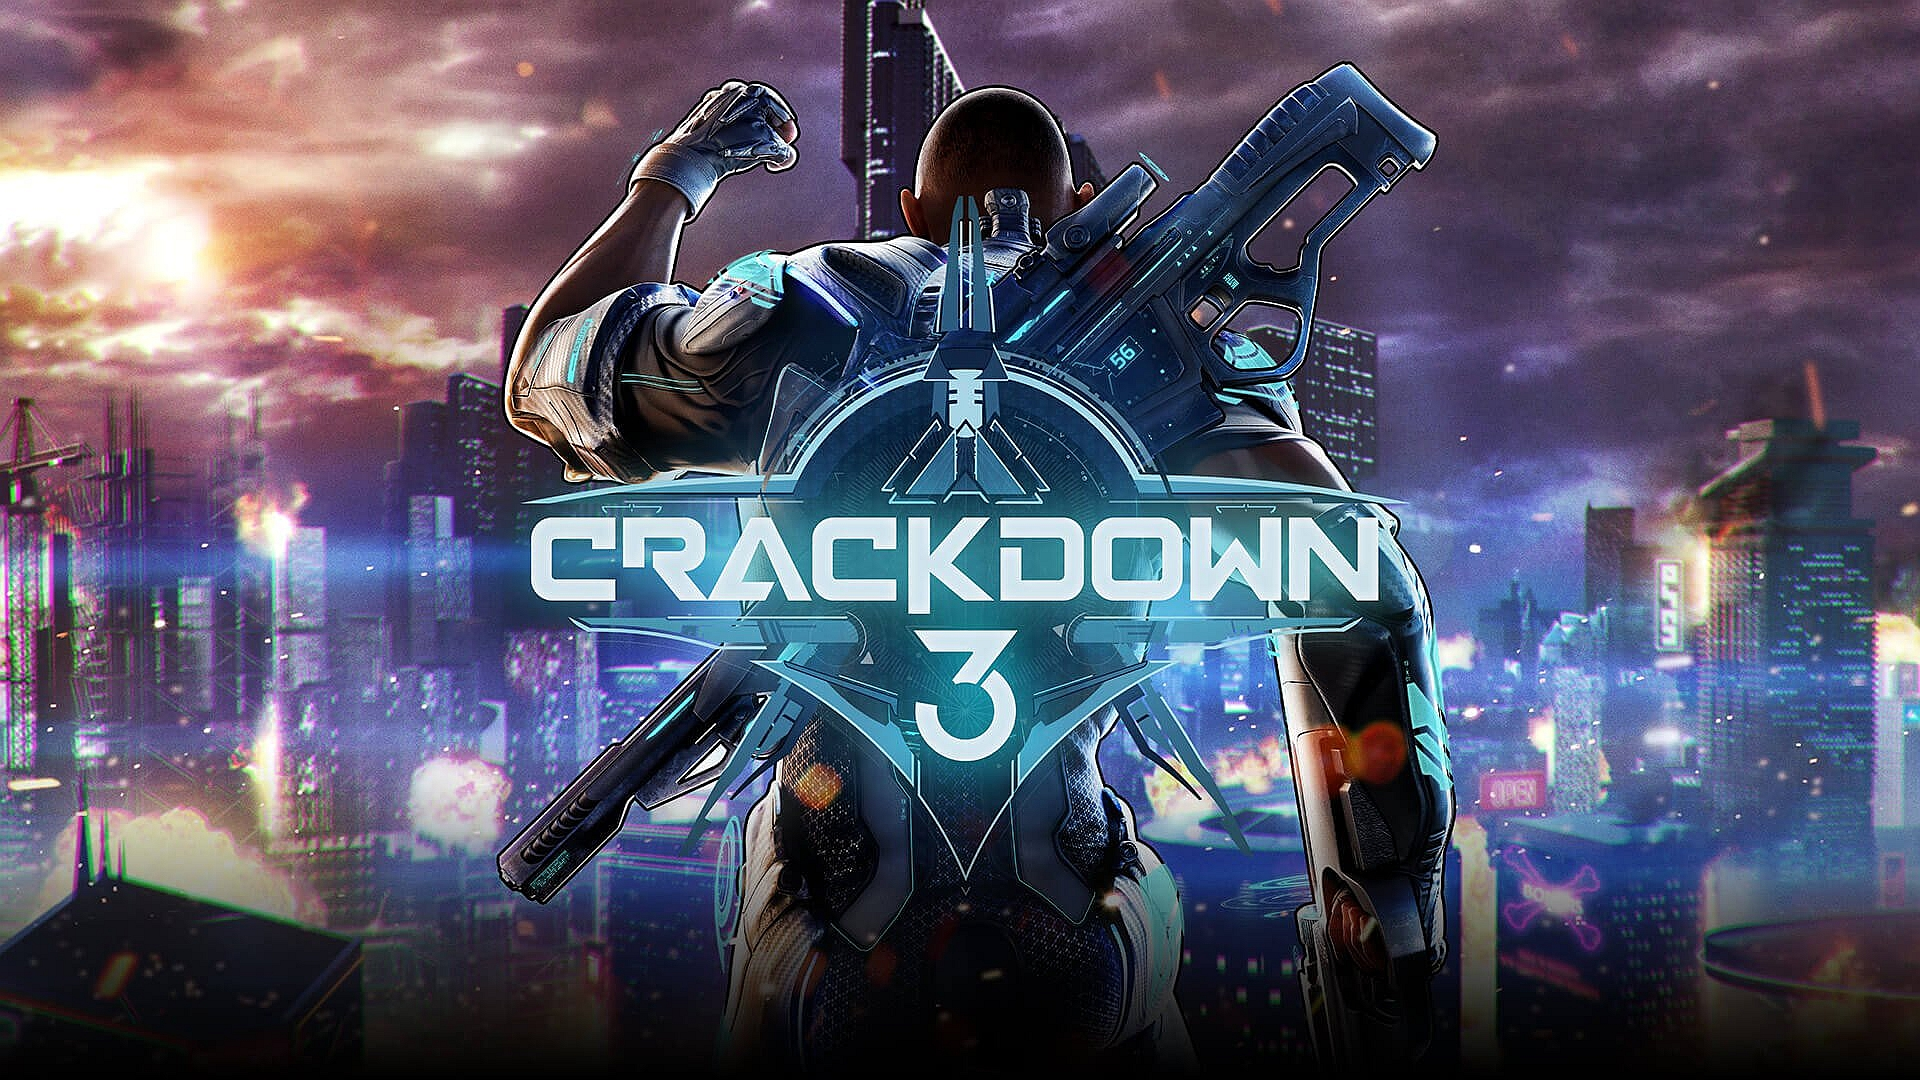 Crackdown 3 PC Game Free Download Latest